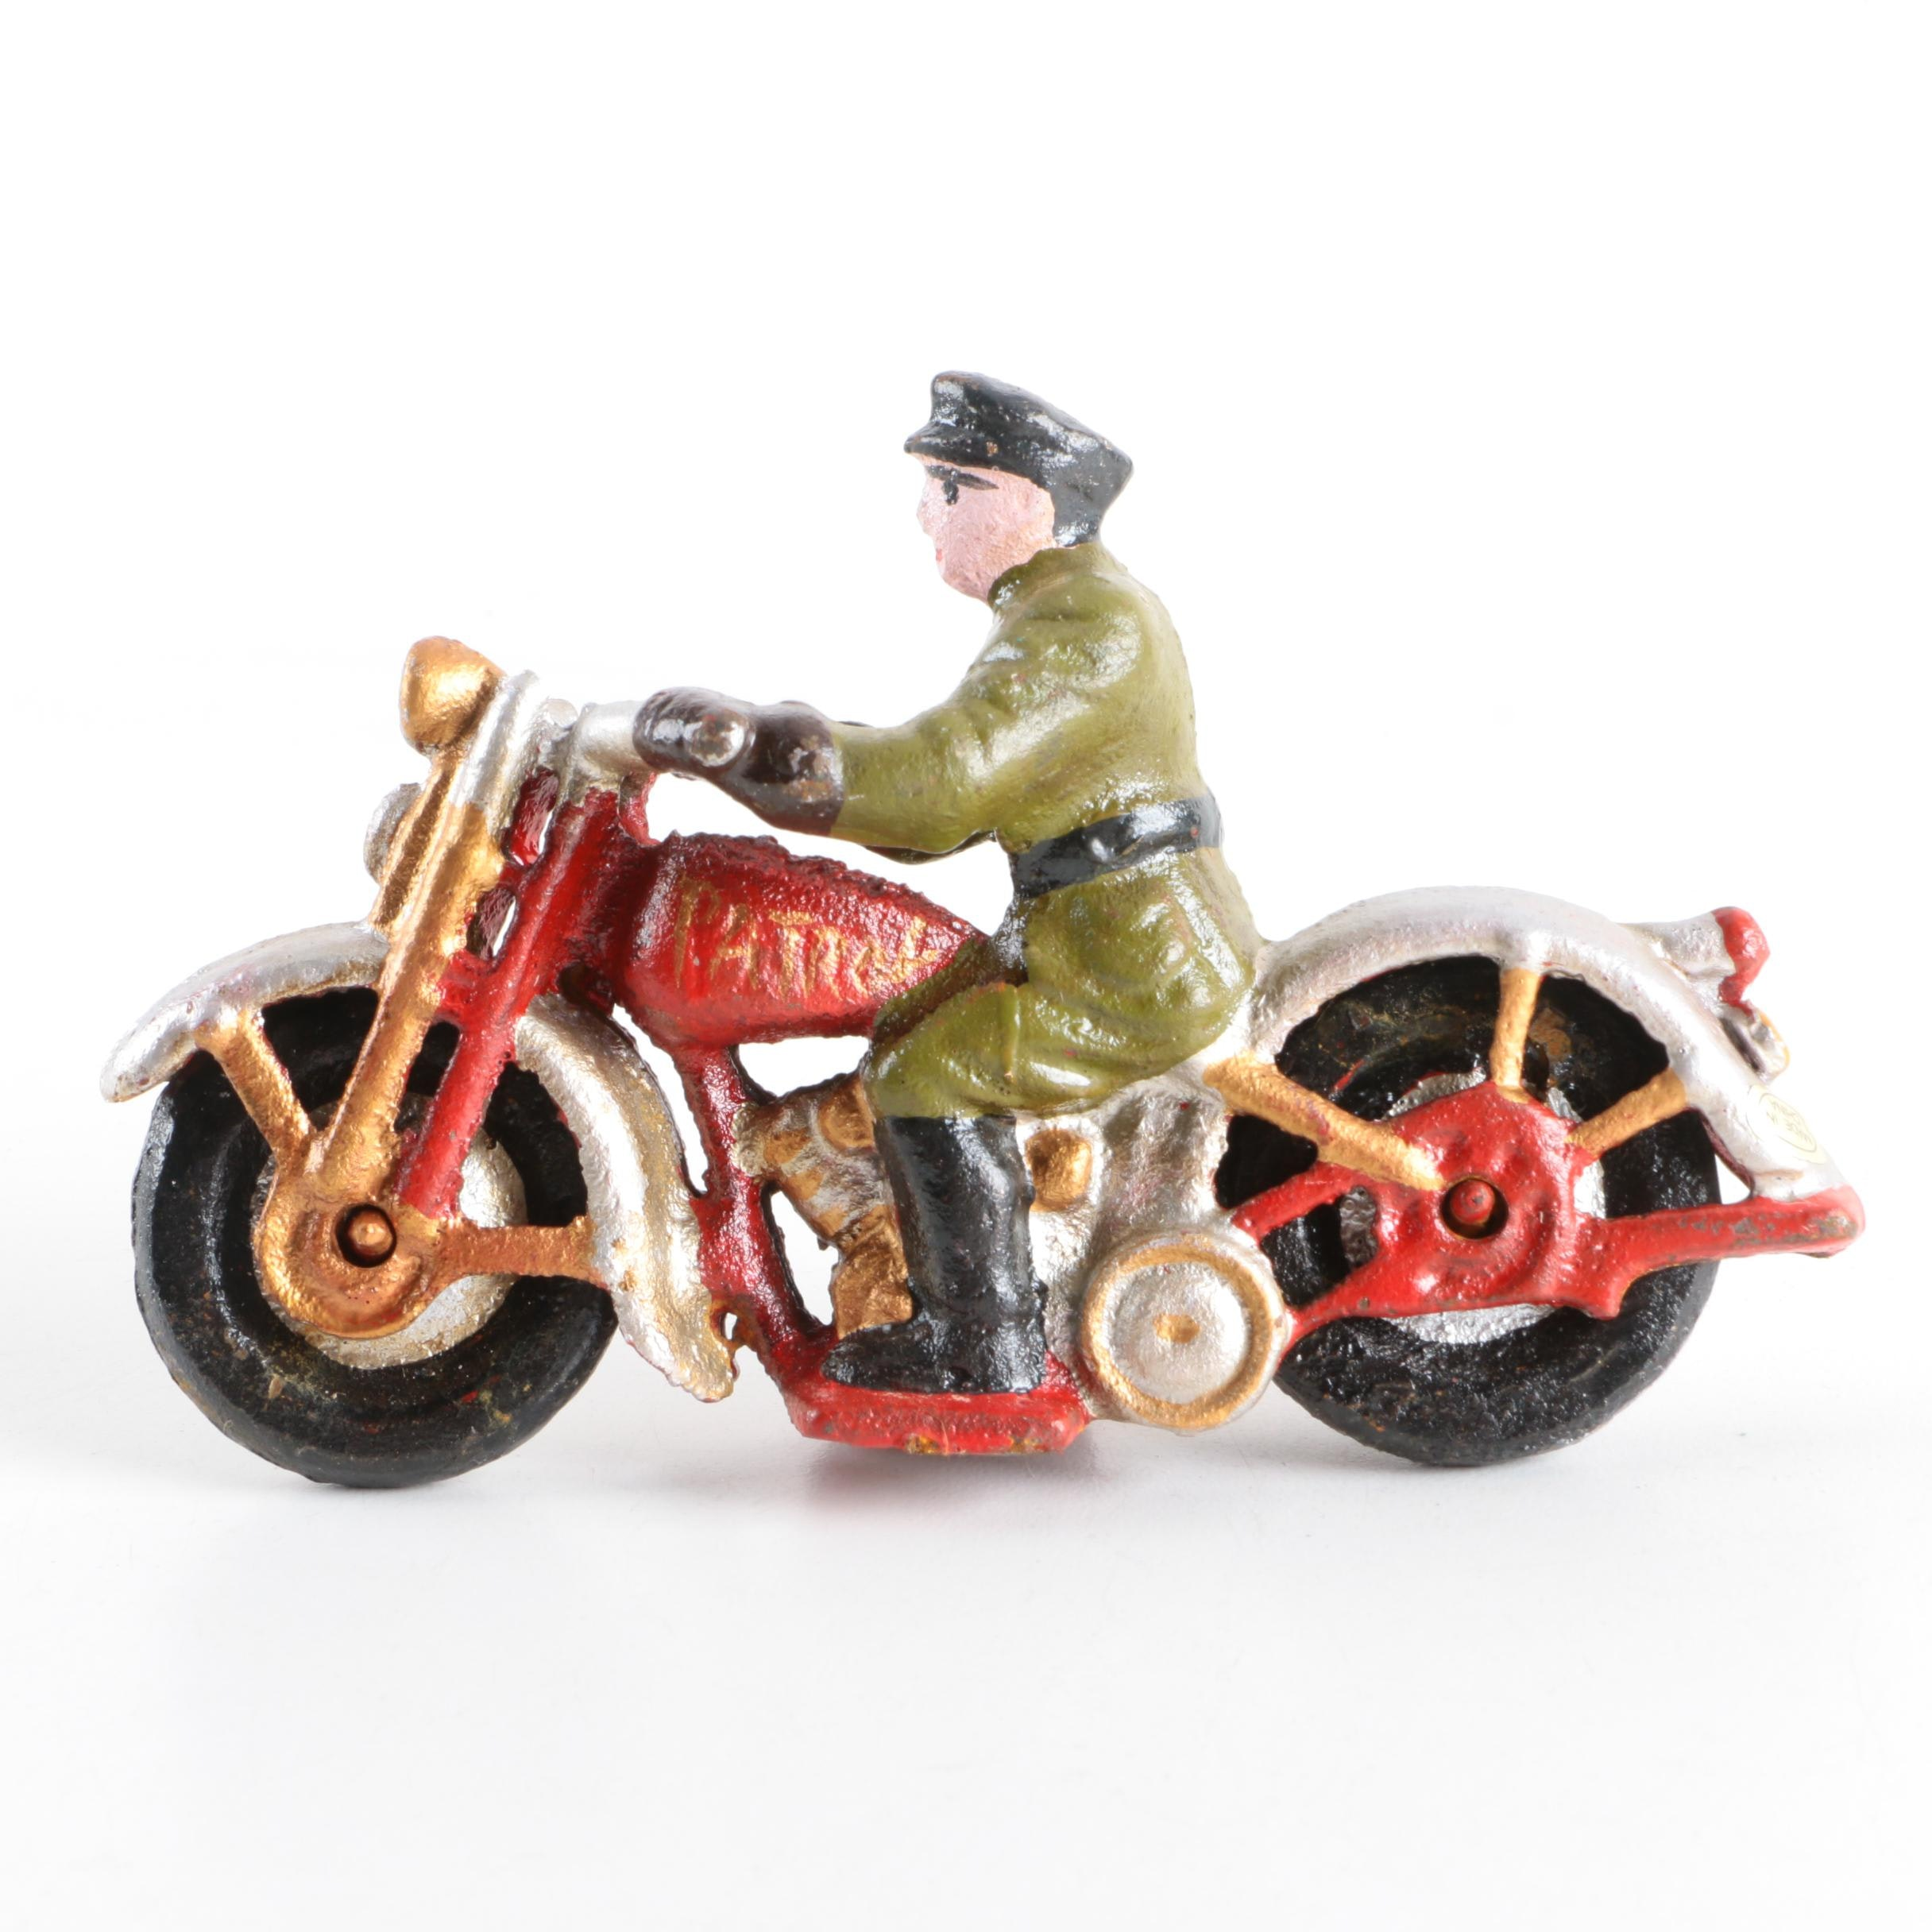 Reproduction Hubley Style Die Cast Patrol Officer Figurine